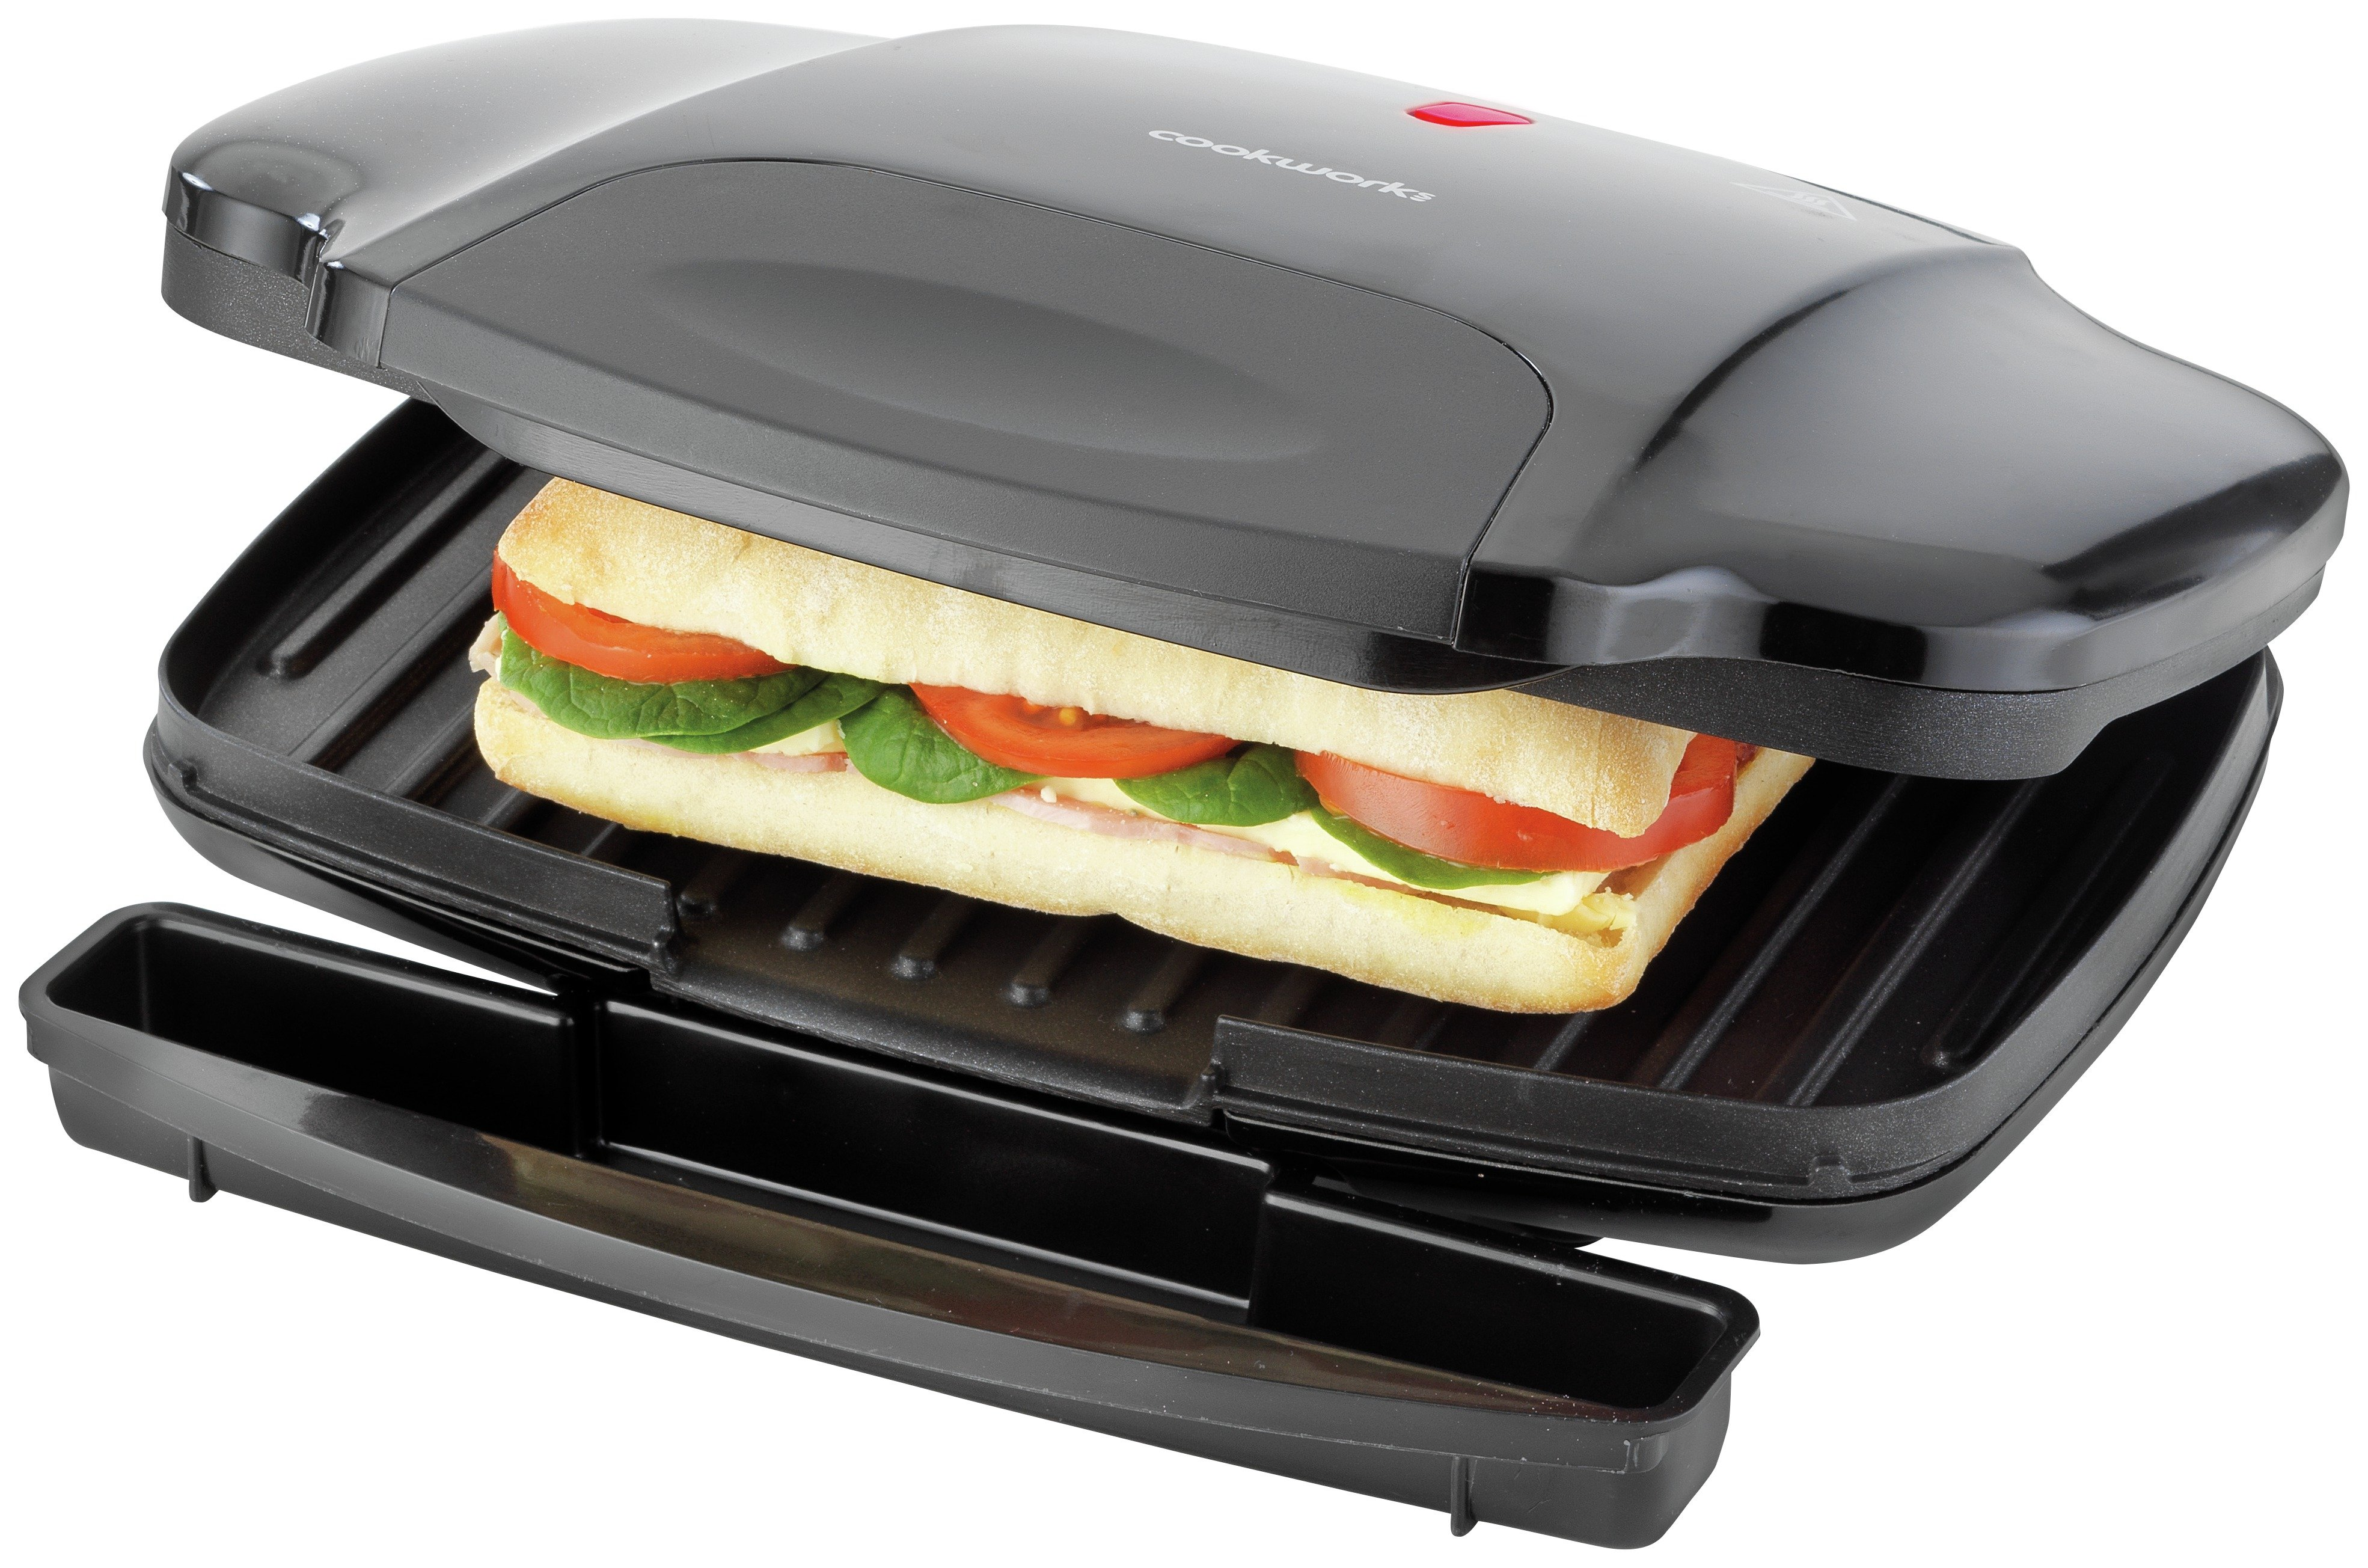 Image of Cookworks 2 Portion Panini Grill - Black